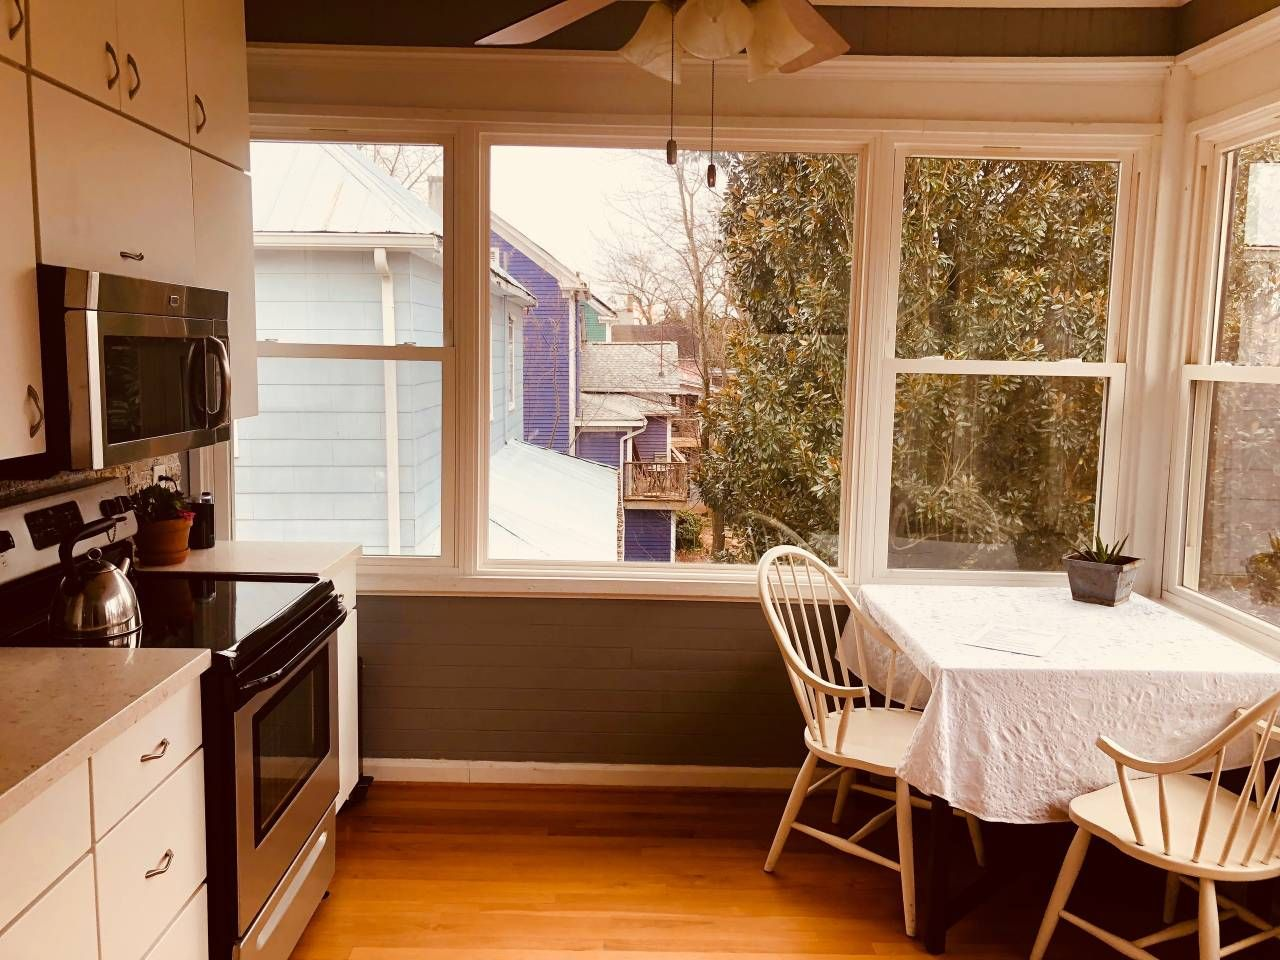 Kitchen View Kitchen Views Apartment Cleaning Apartments For Rent